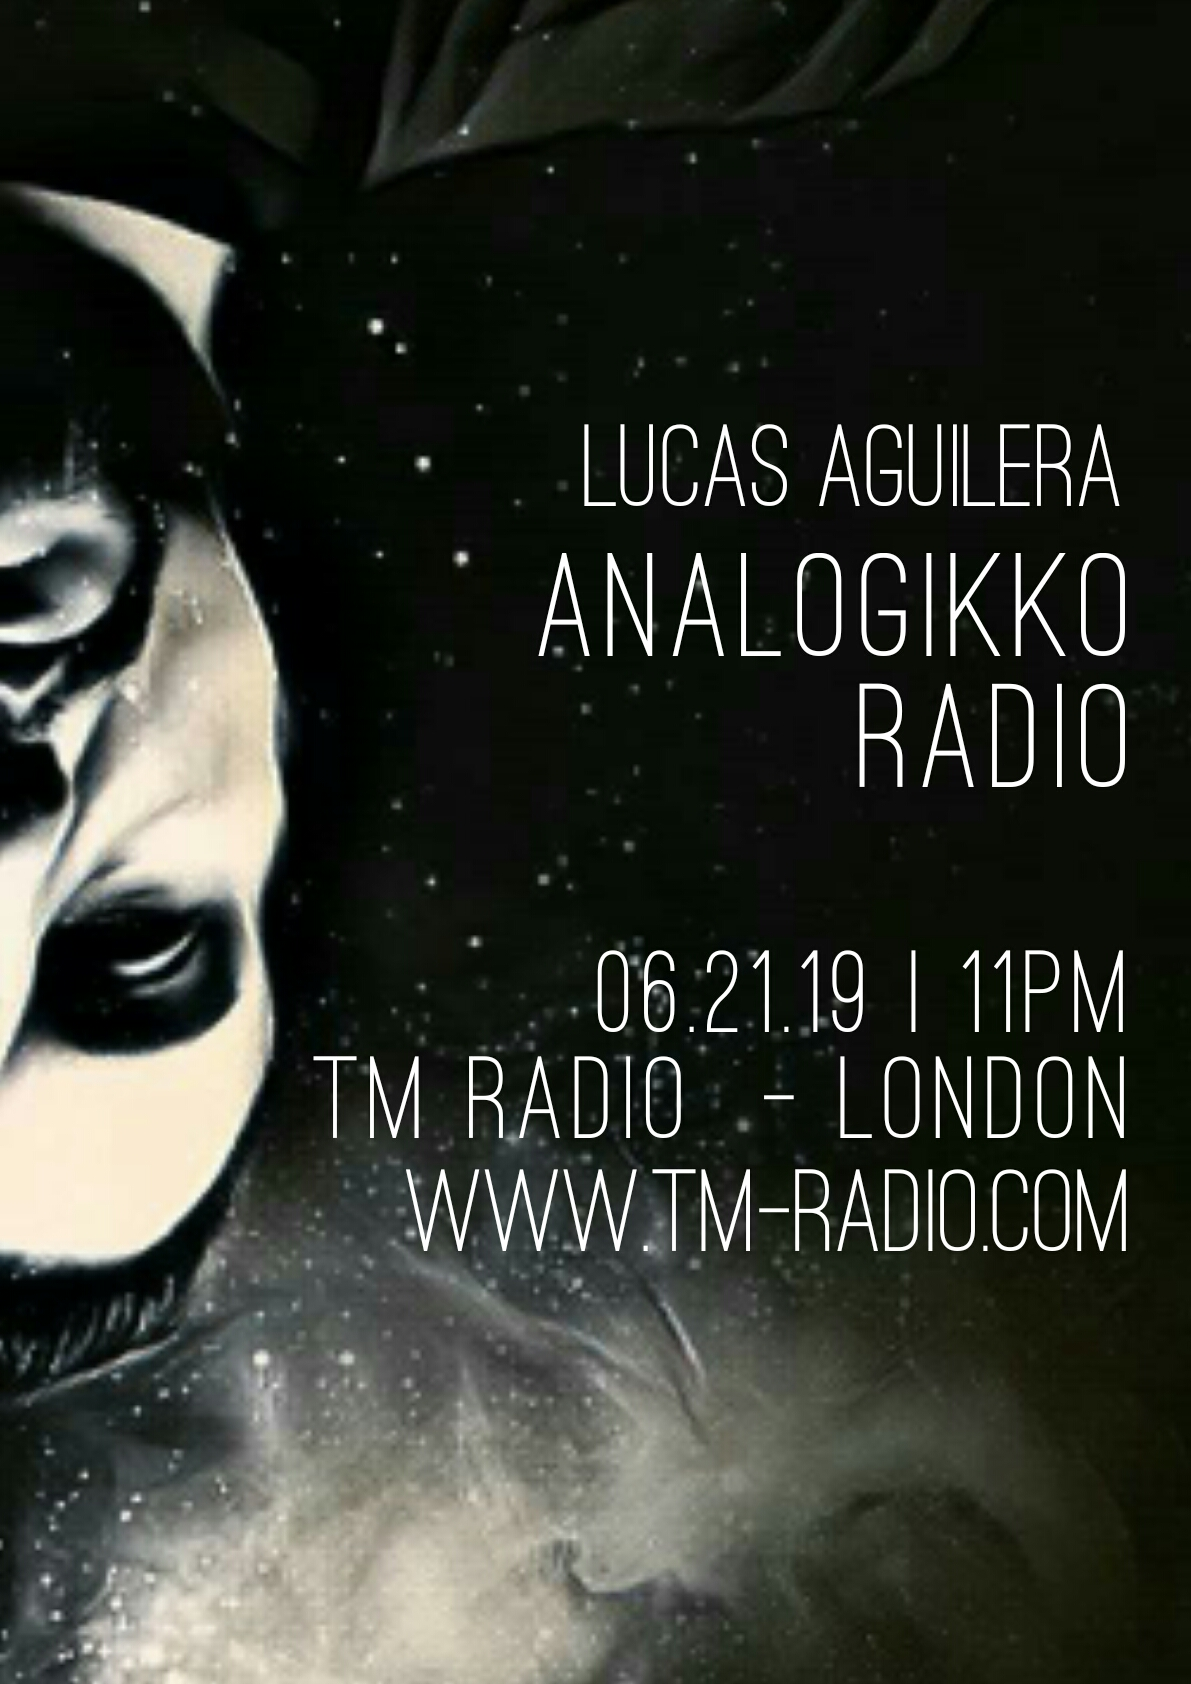 Analogikko Radio :: ANALOGIKKO RADIO BY LUCAS AGUILERA - TM RADIO - Episode 067 (aired on June 21st, 2019) banner logo